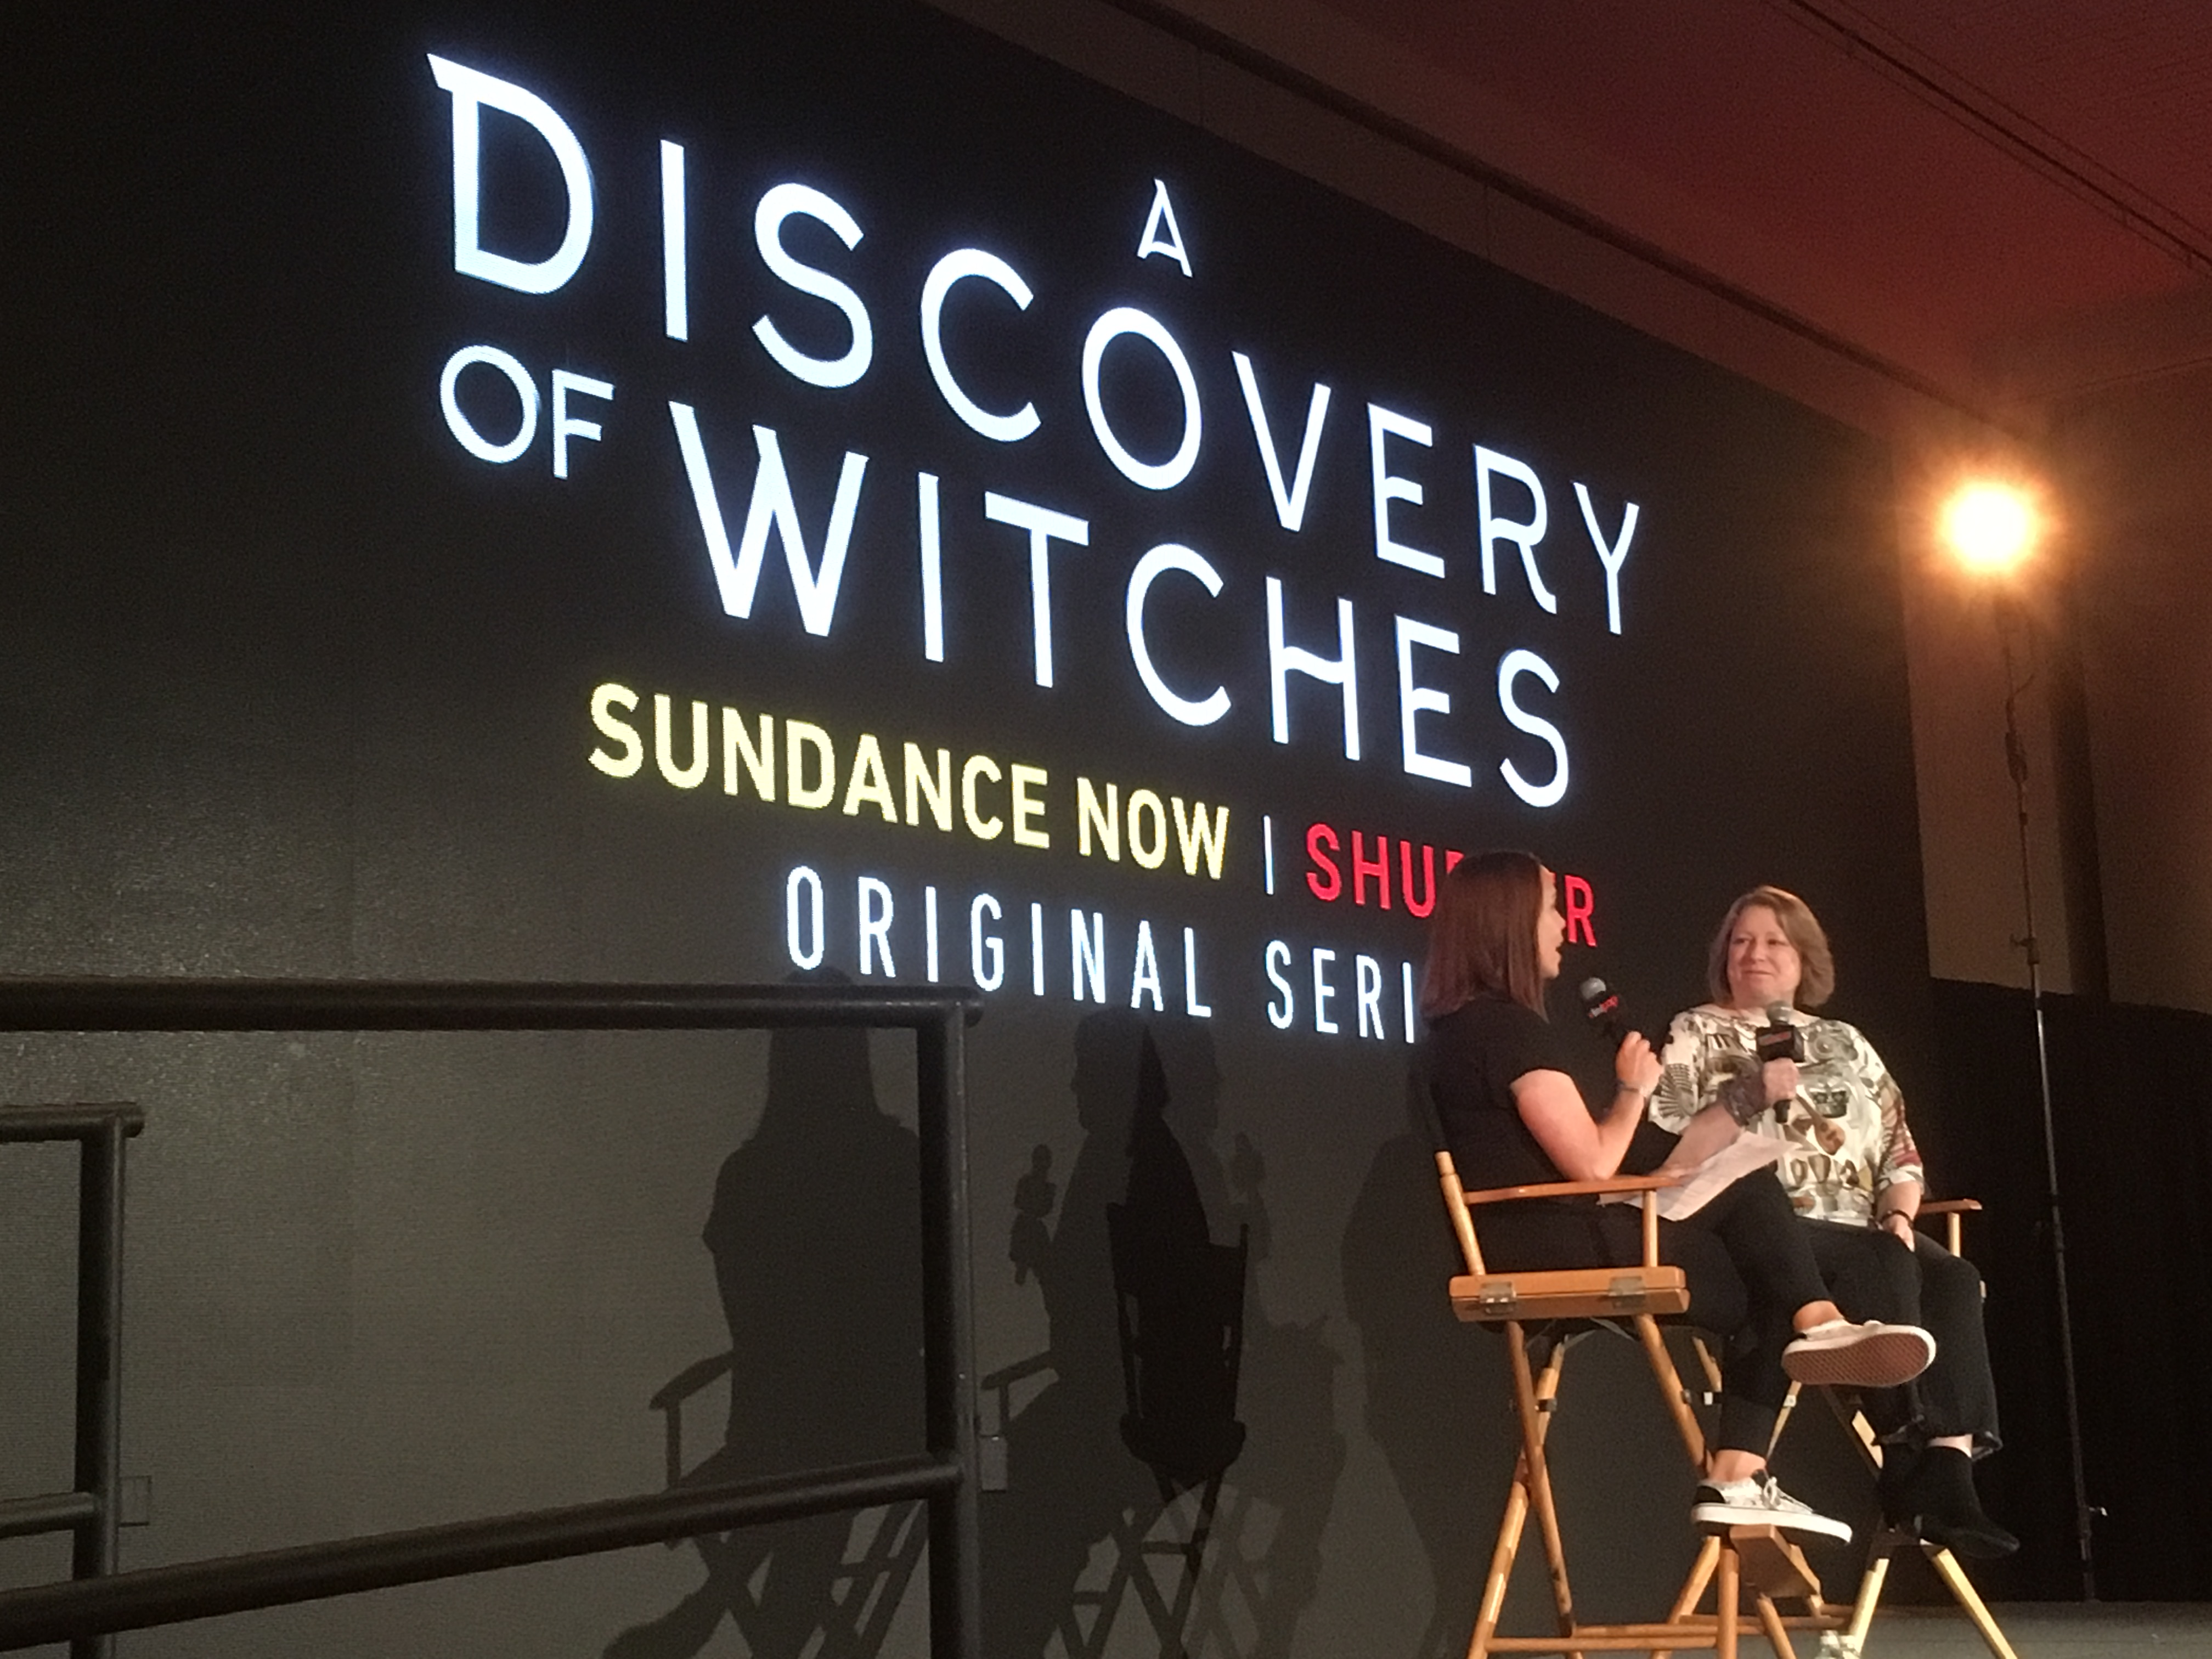 NYCC 2018: Comic Con audience treated to exclusive screening of 'A Discovery of Witches' episode 1